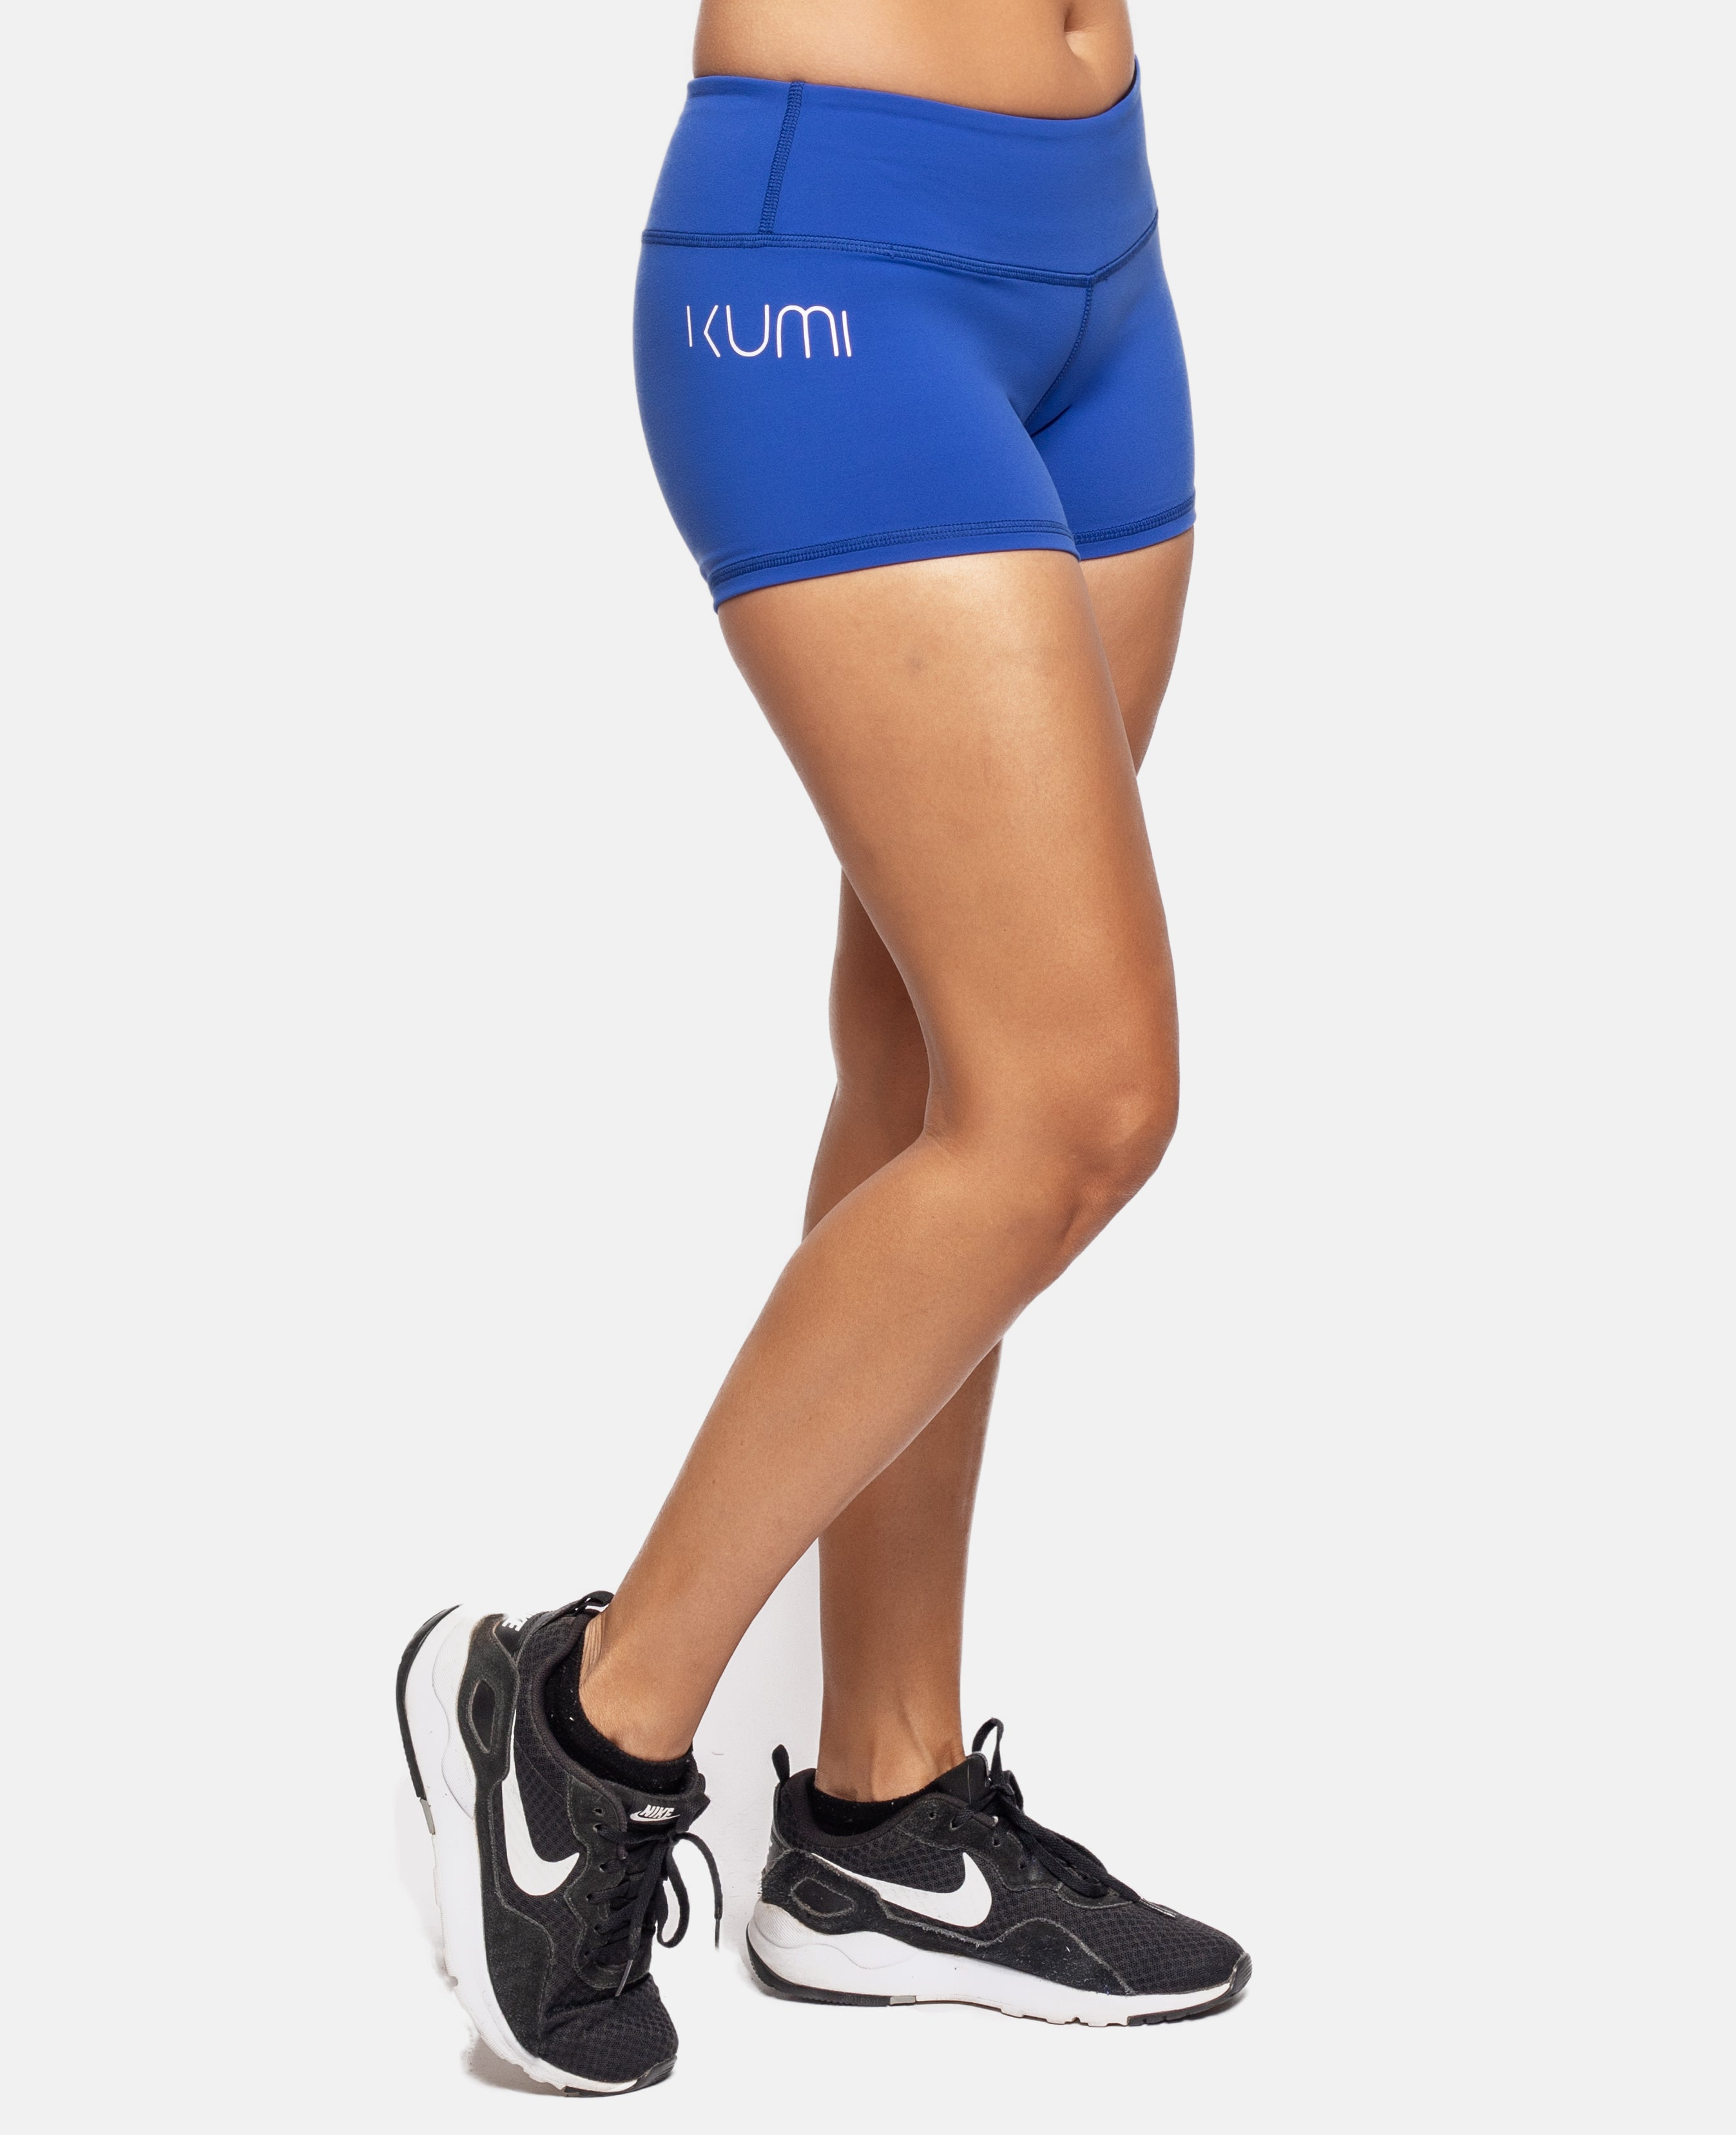 Kumi Booty Shorts ROYAL